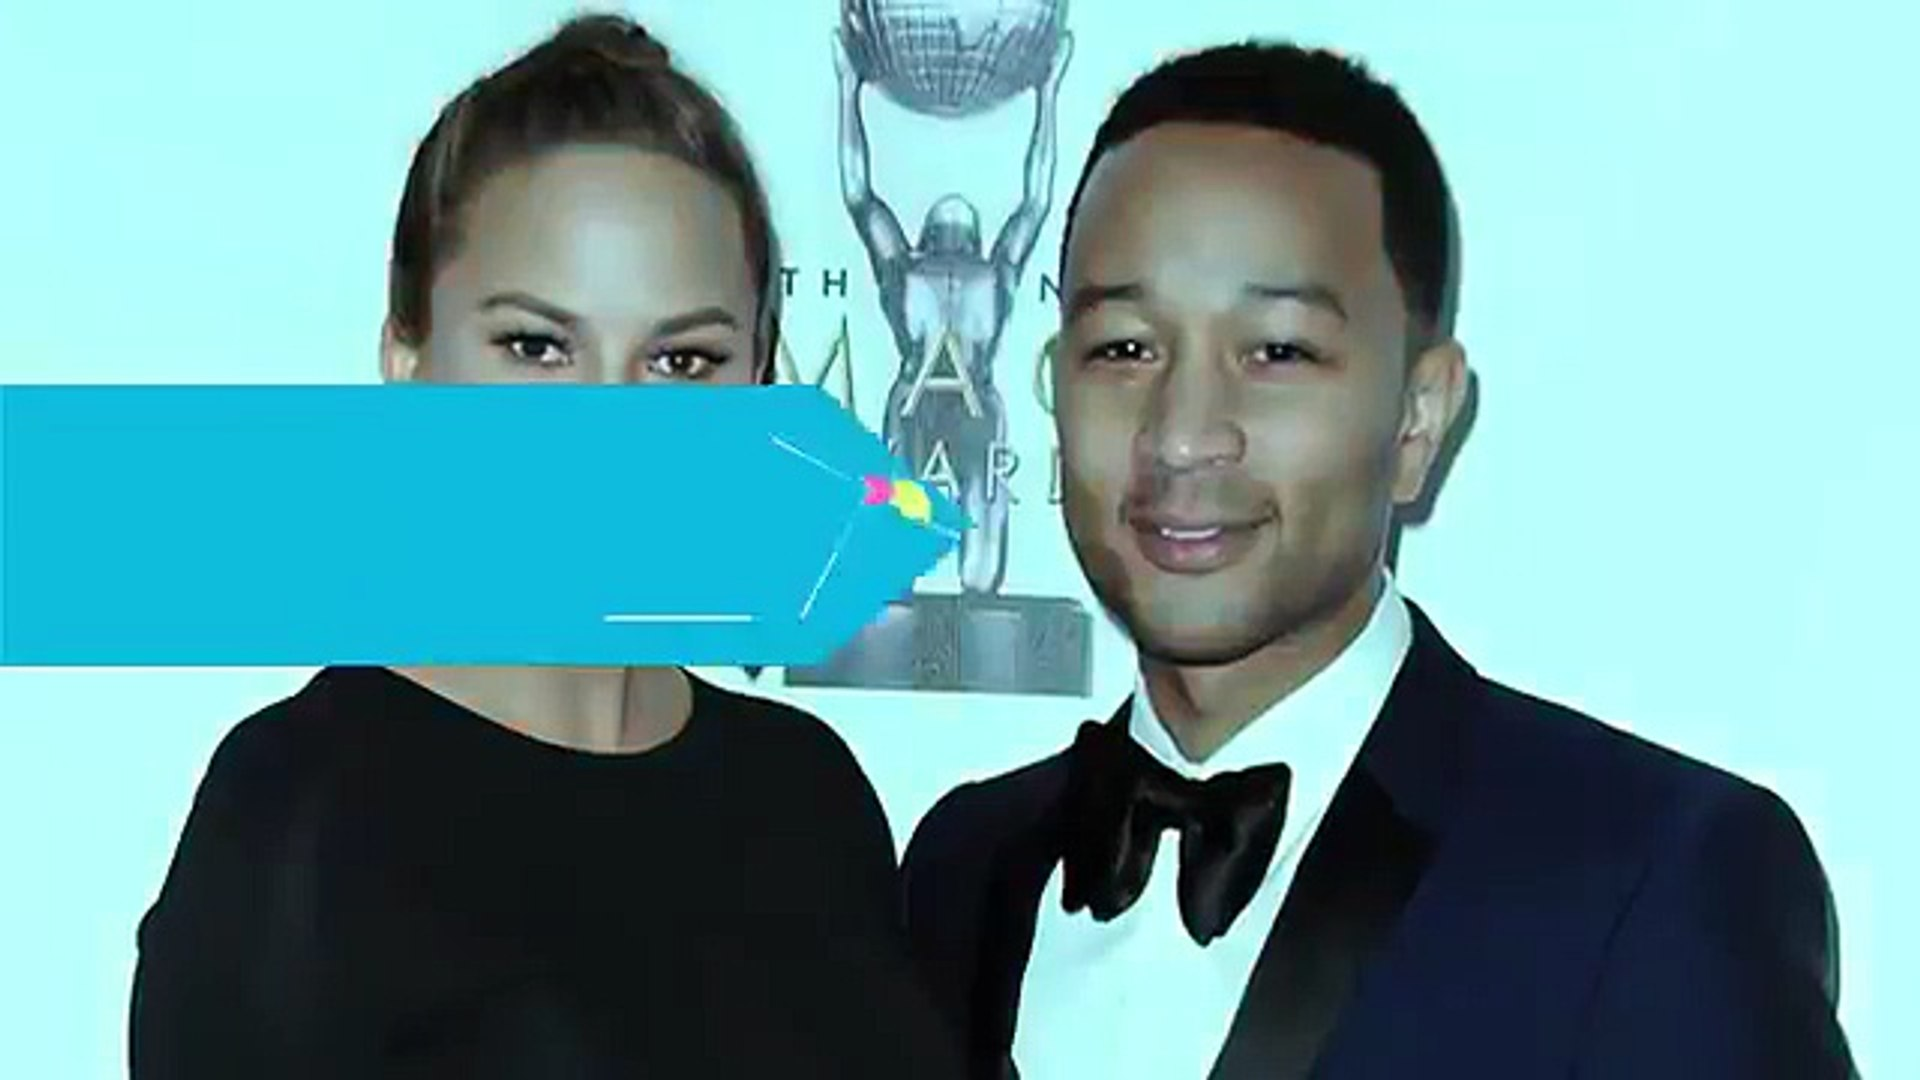 Is This Really How Chrissy Teigen and John Legend Going to Name Their Name? (Funny)